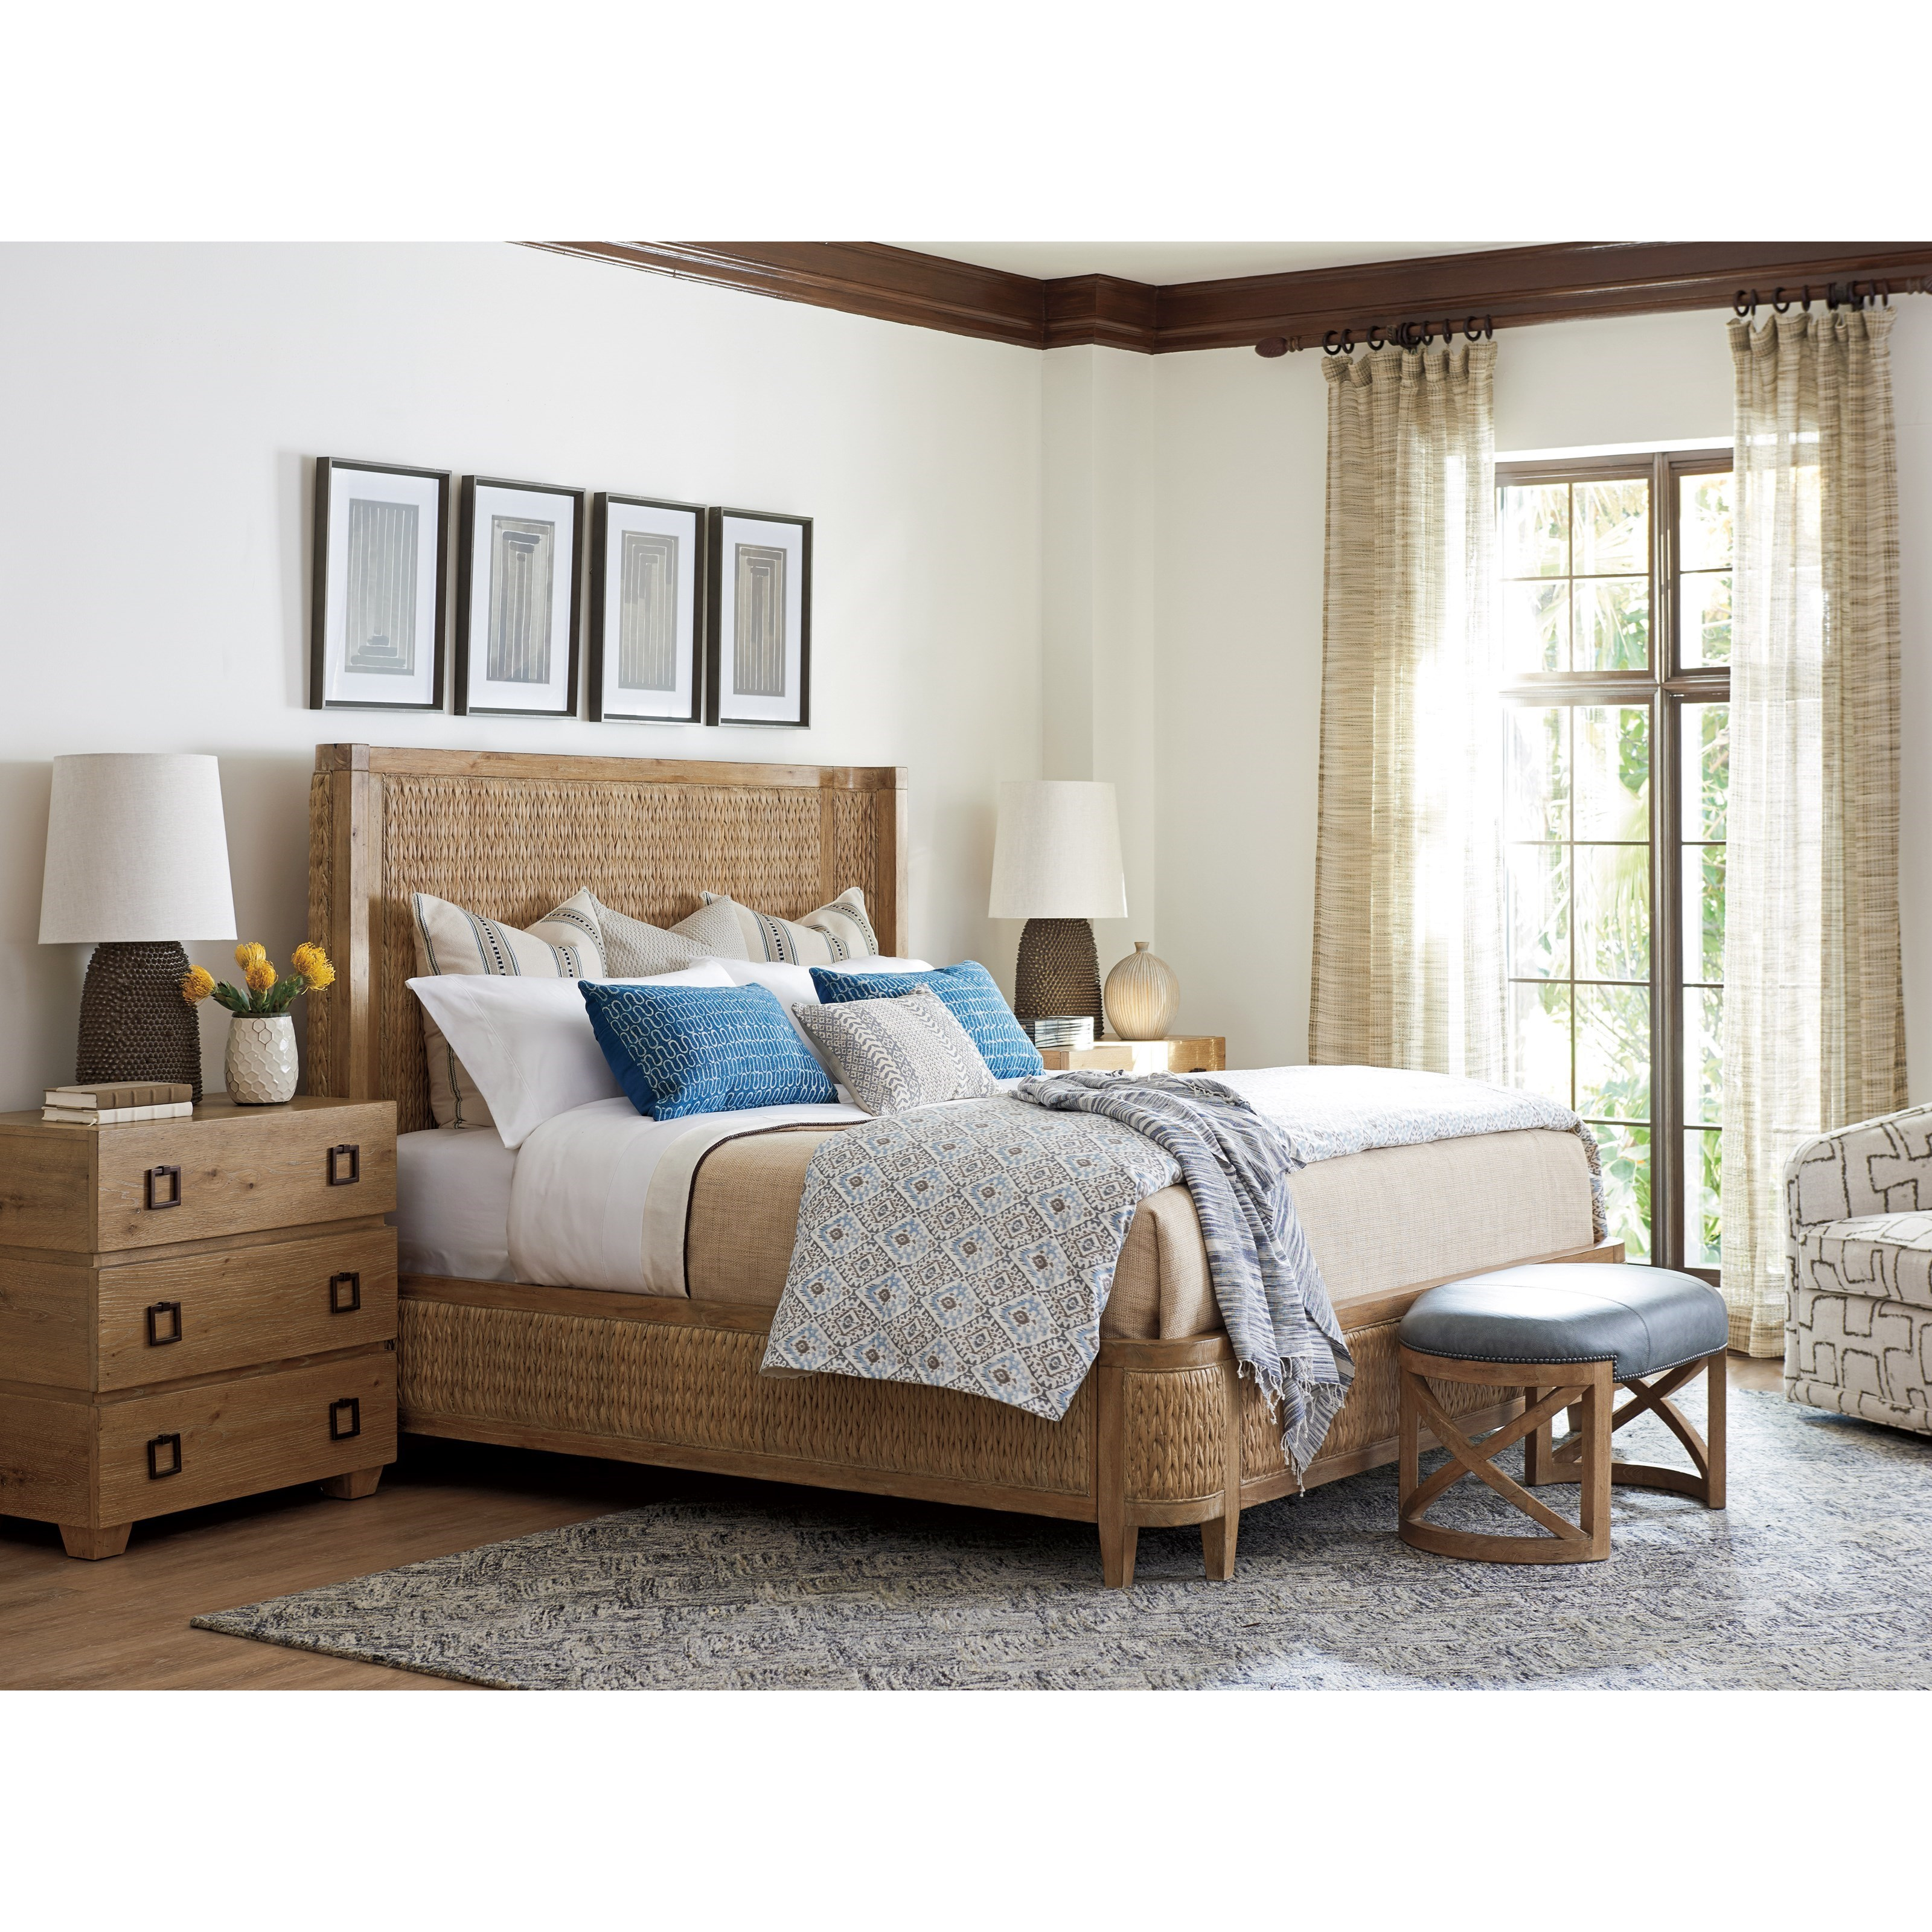 Los Altos King Bedroom Group by Tommy Bahama Home at Baer's Furniture